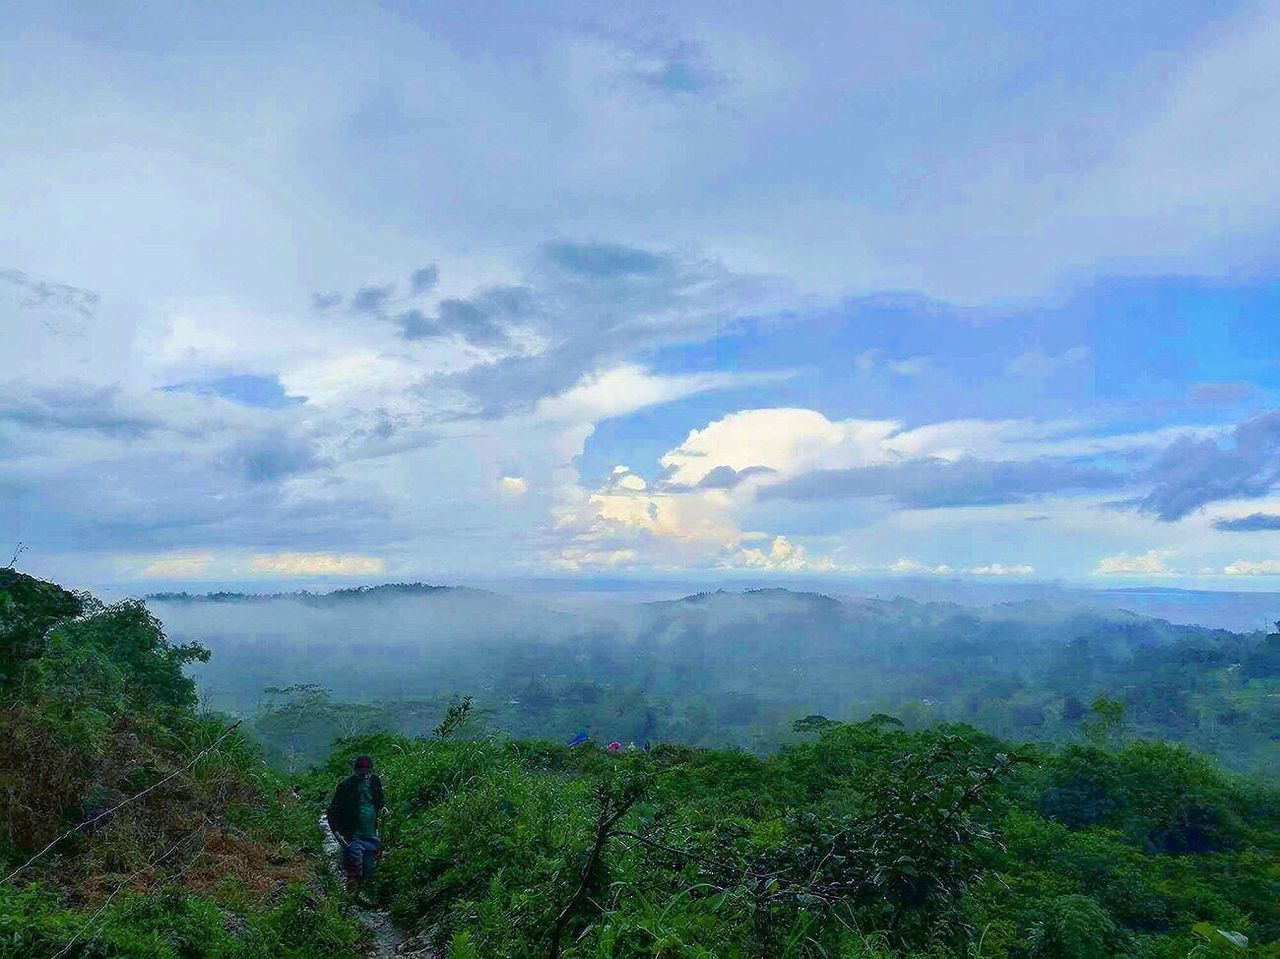 sky, nature, beauty in nature, real people, scenics, tranquil scene, cloud - sky, landscape, tranquility, day, outdoors, one person, growth, men, tree, mountain, people